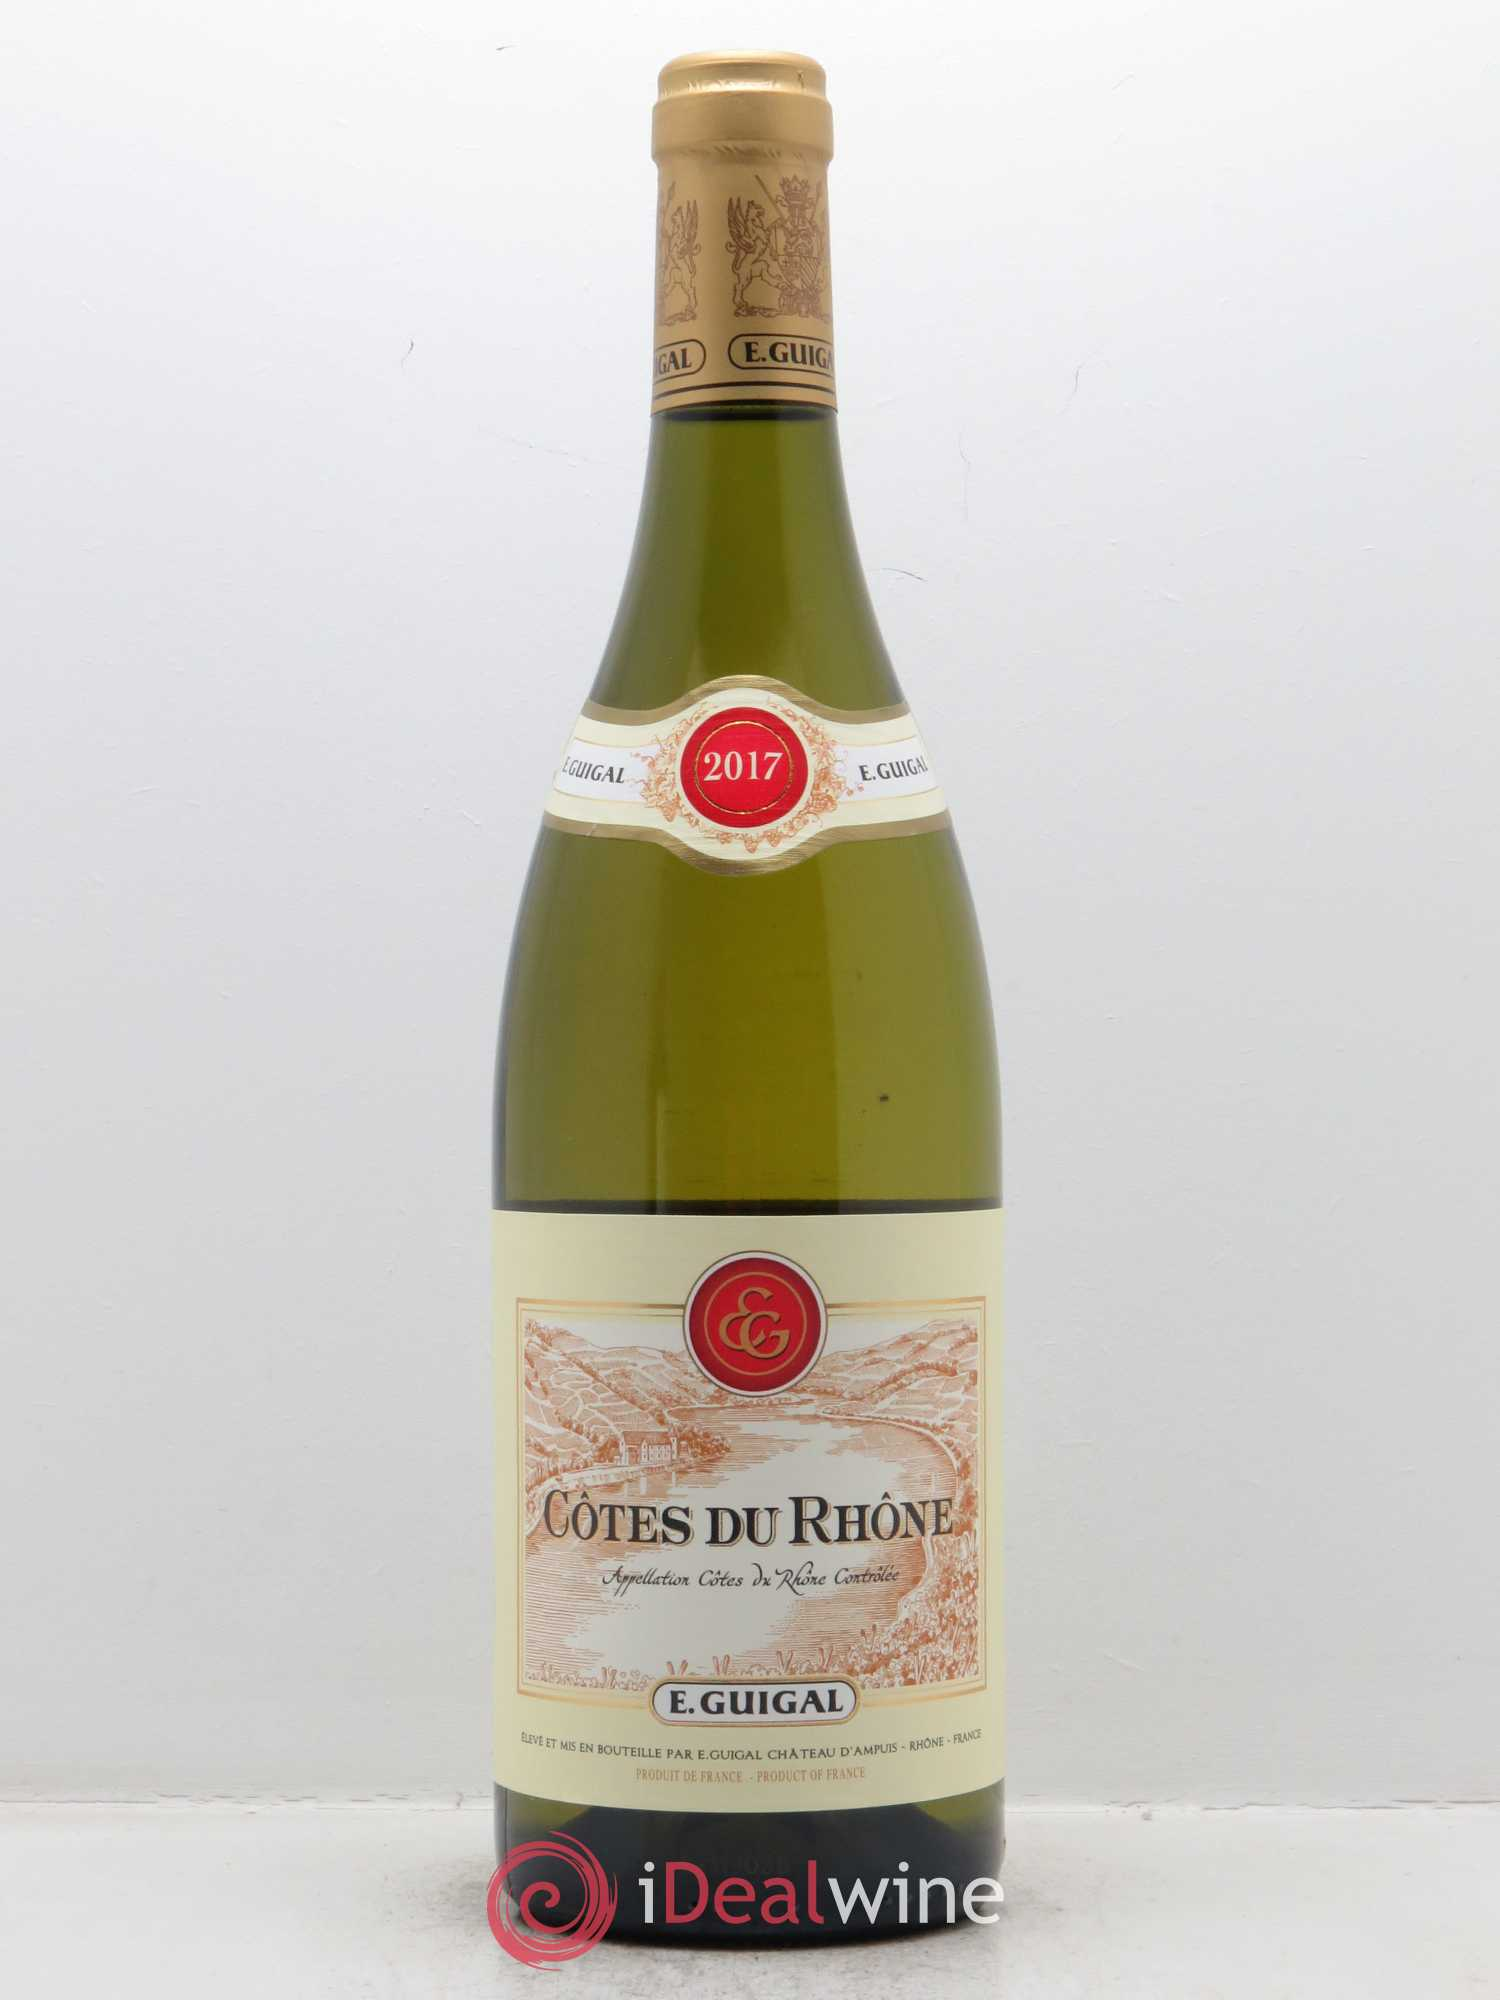 Côtes du Rhône Guigal  2017 - Lot of 1 Bottle